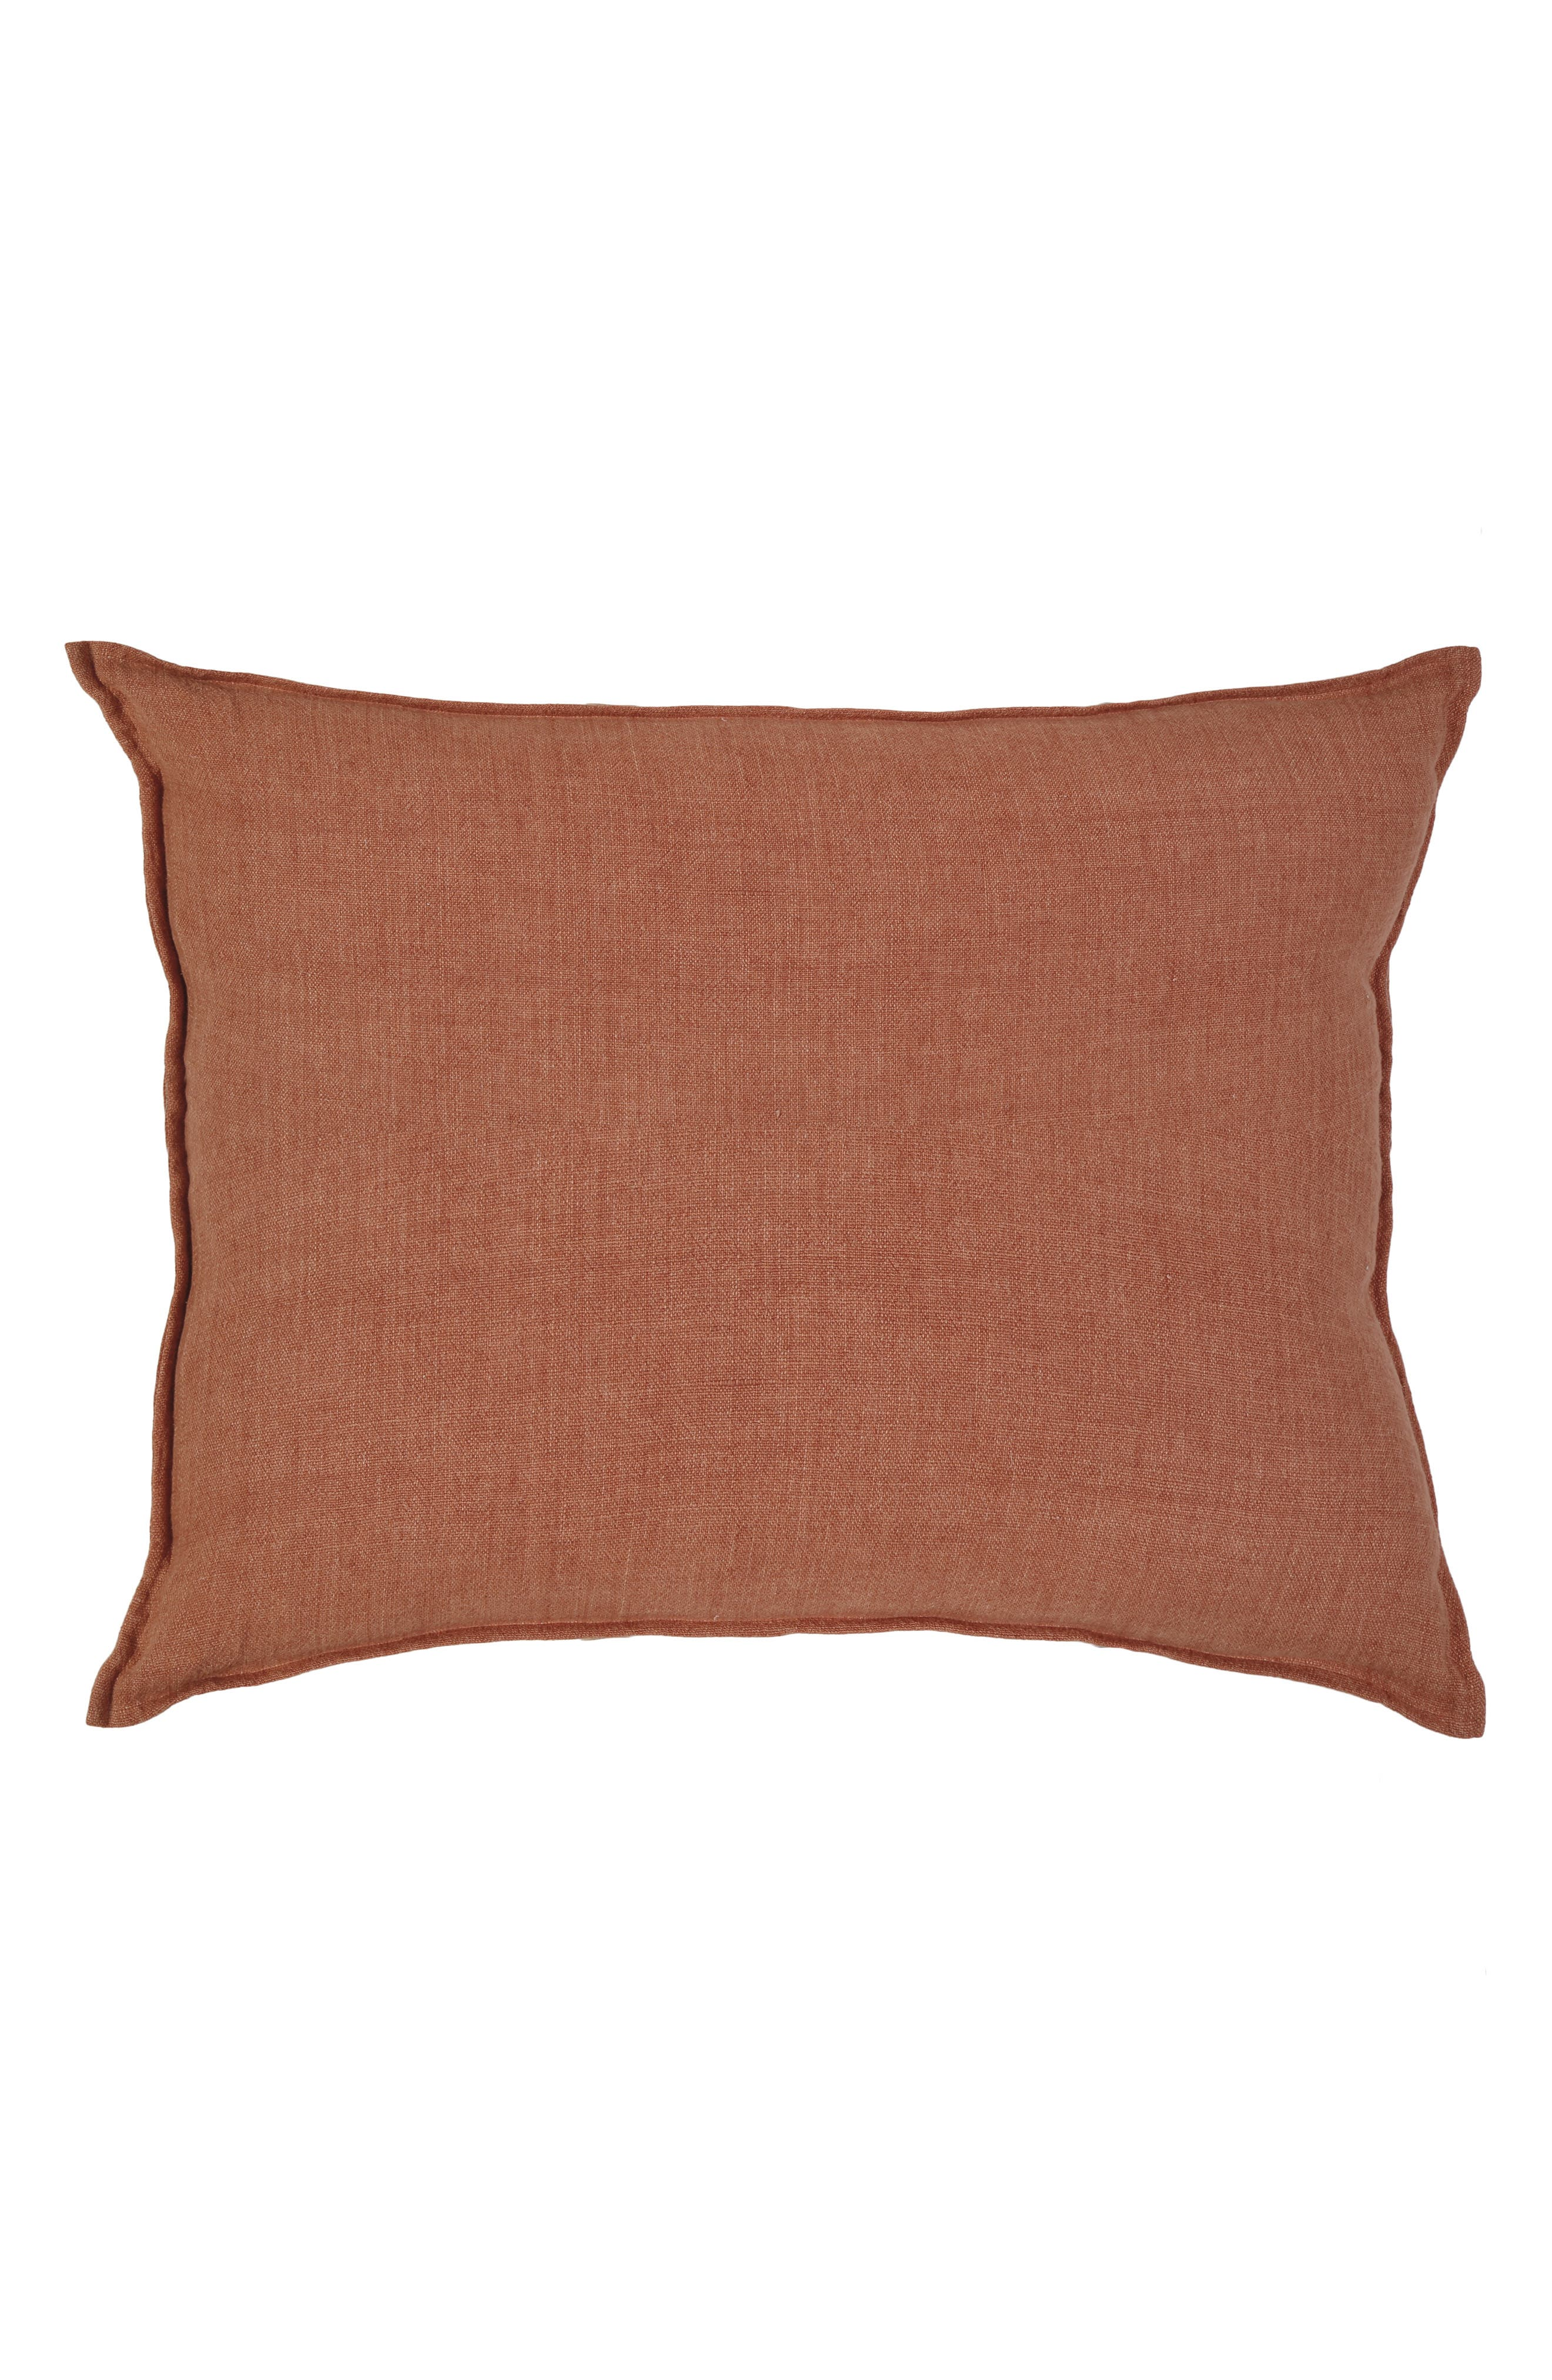 POM POM AT HOME, Montauk Accent Pillow, Main thumbnail 1, color, TERRA COTTA